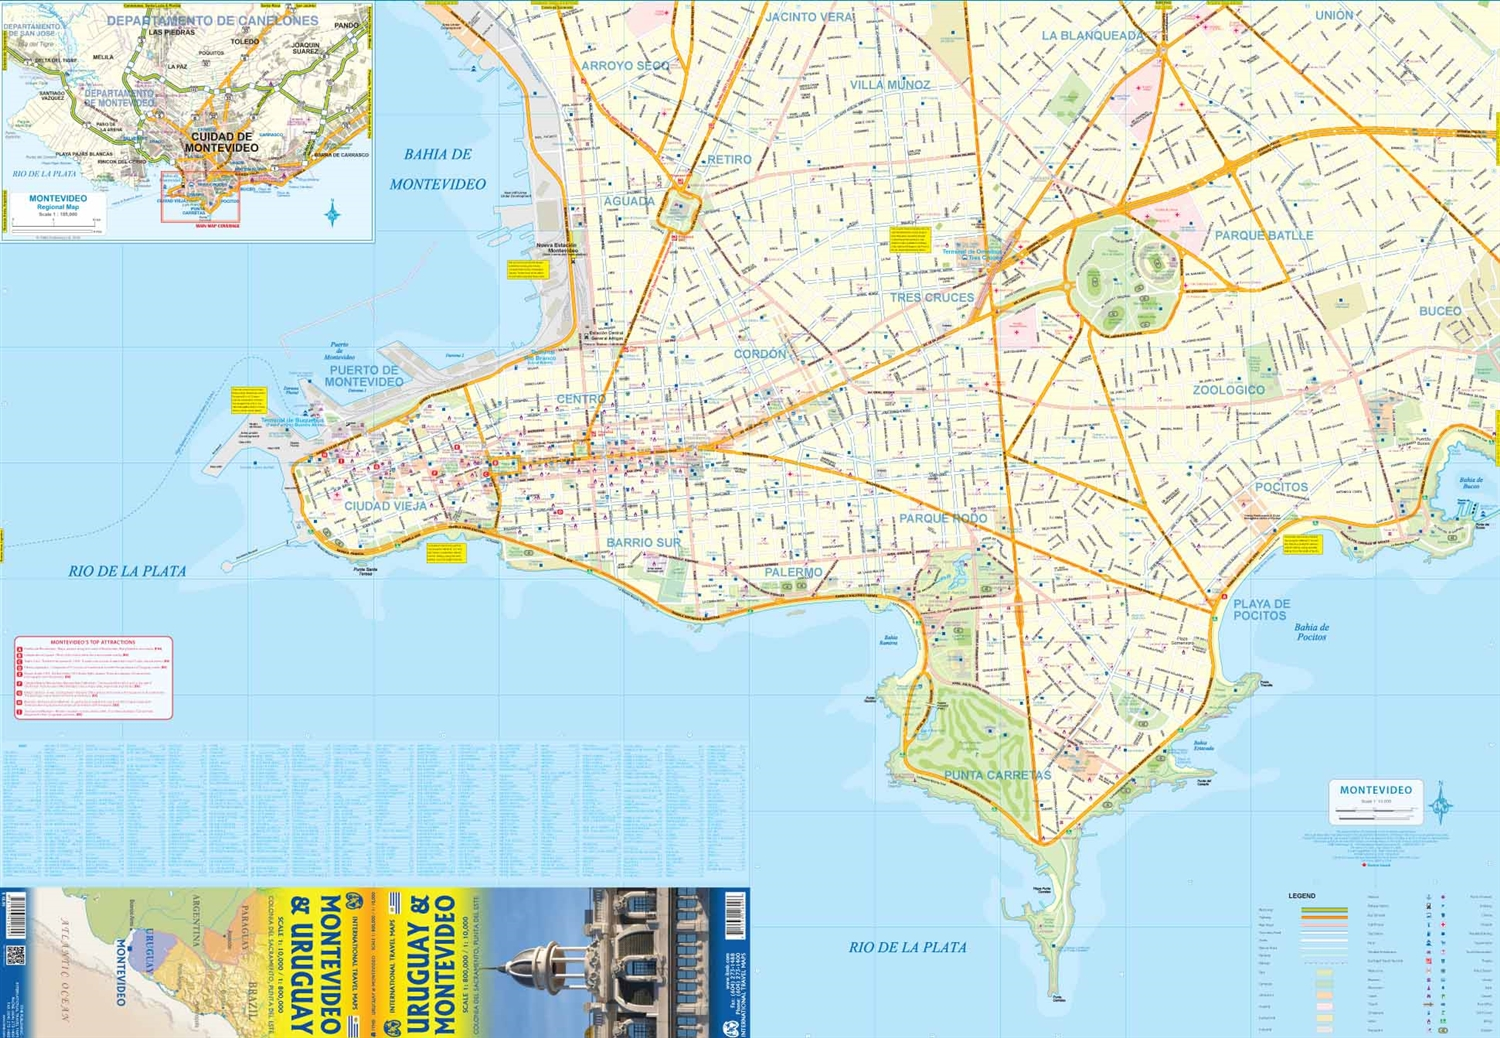 Image of: Uruguay Montevideo Travel Road Map This Is A Very Detailed Topographical Map Of Uruguay